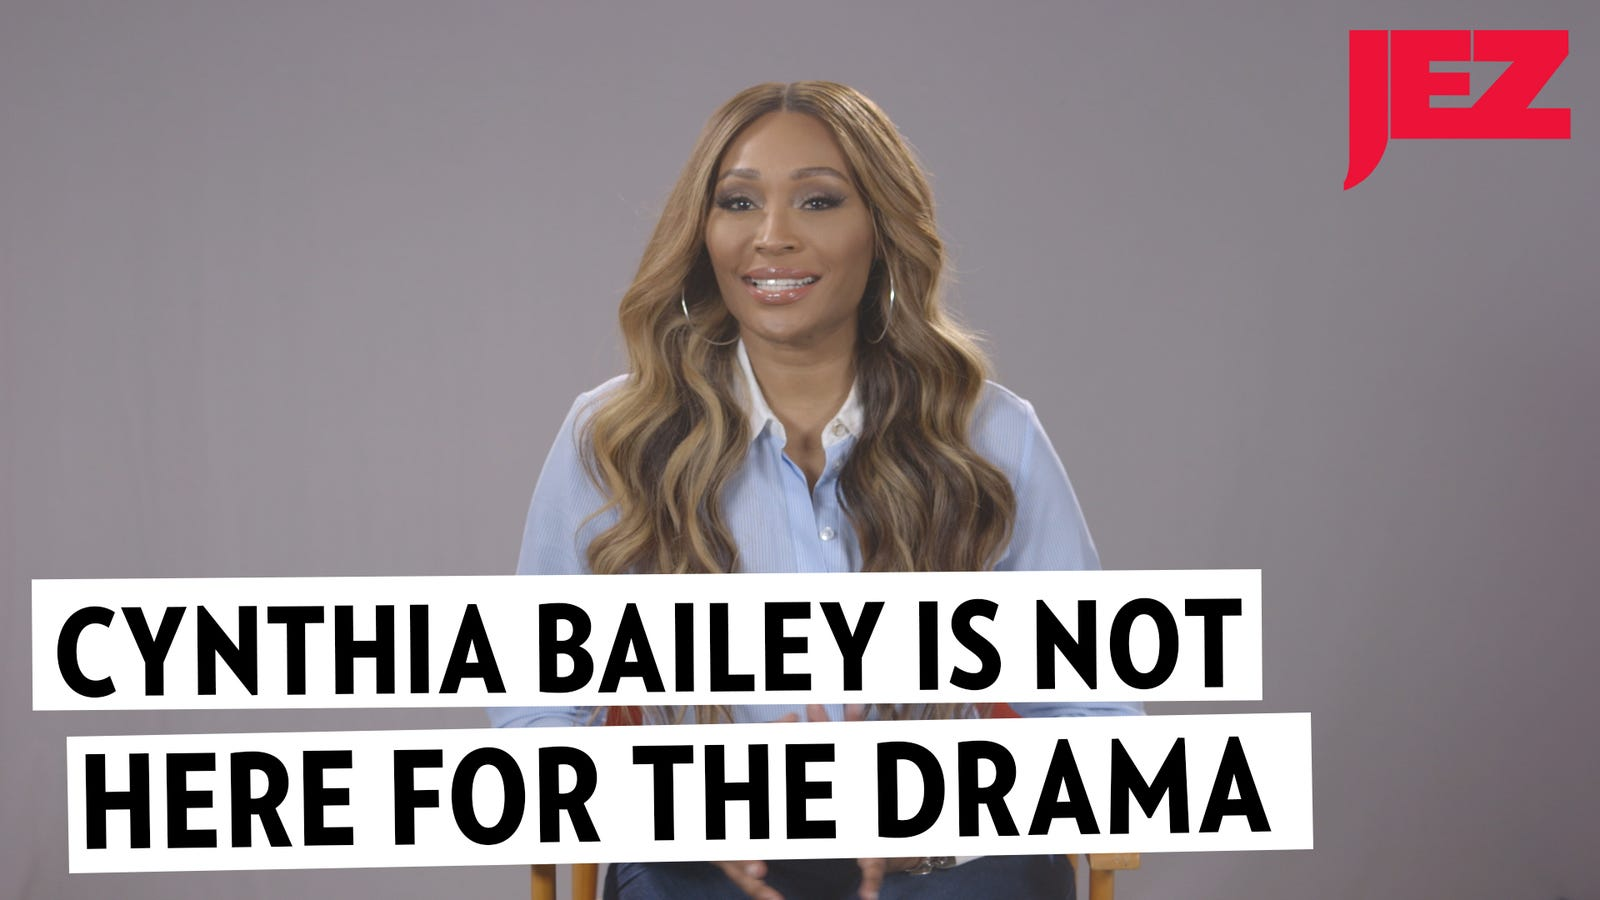 Cynthia Bailey Is Not Here For the Drama